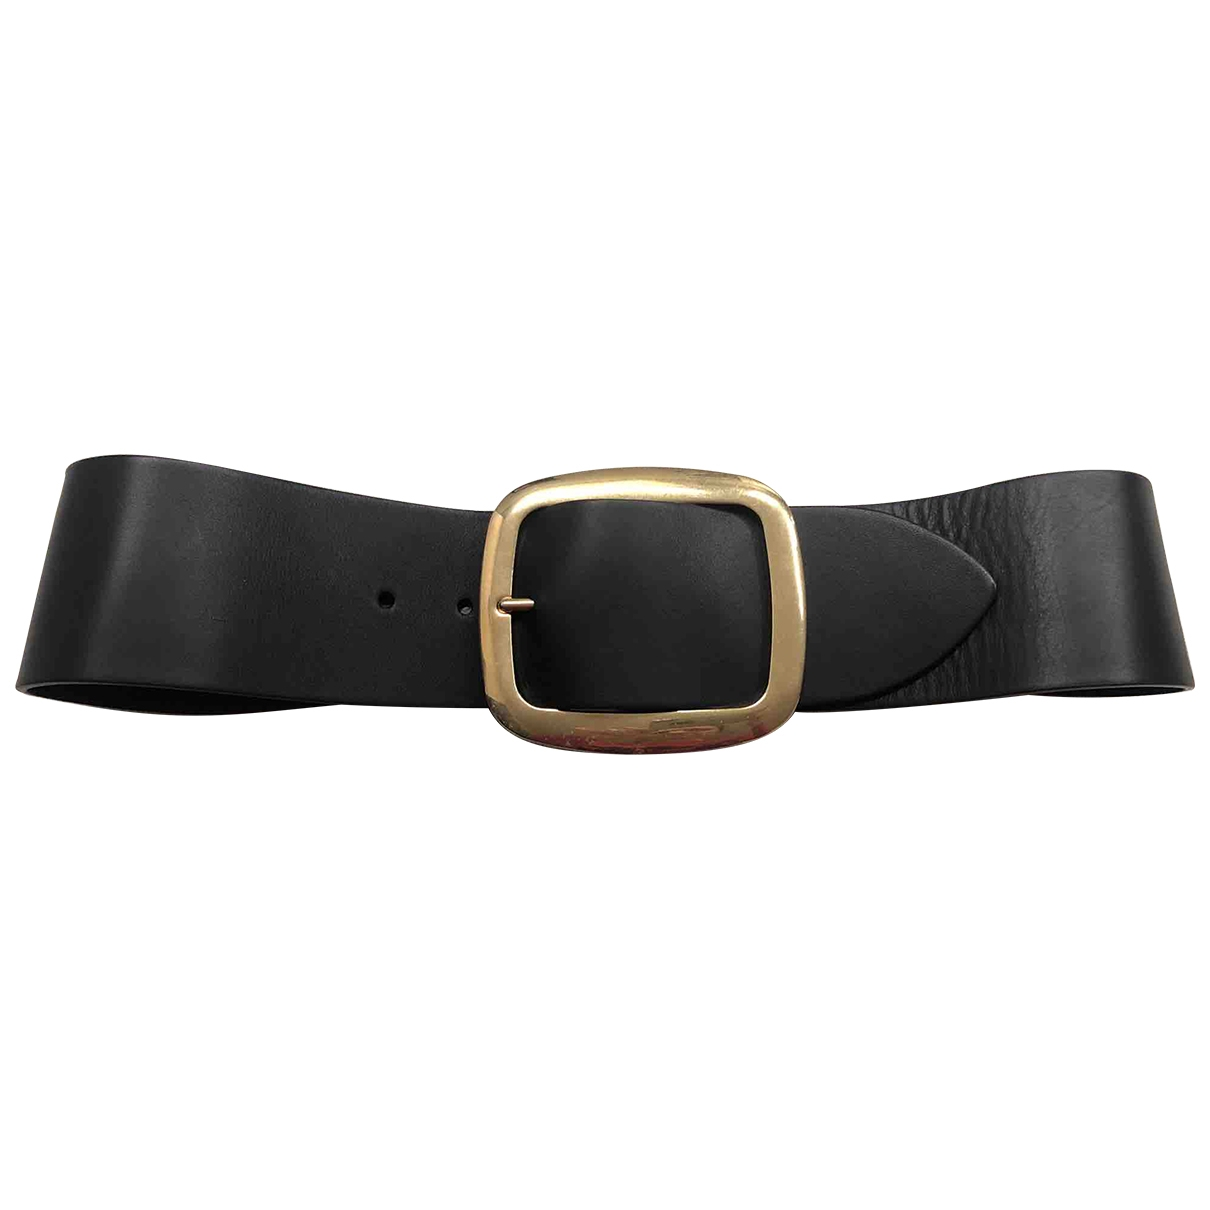 Celine \N Black Leather belt for Women L International